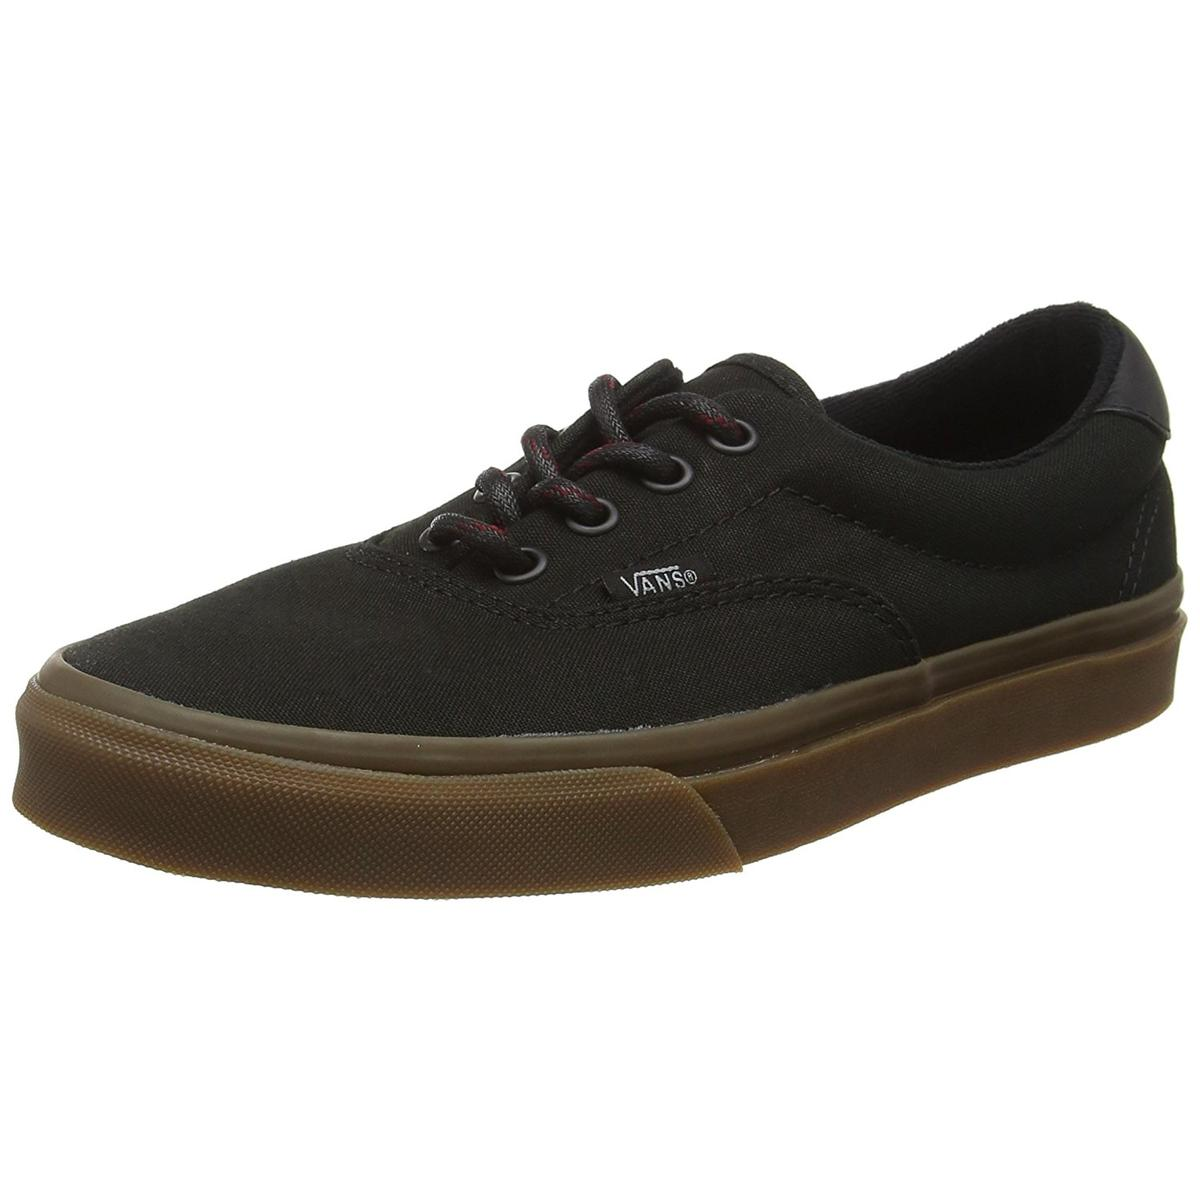 b7e56af11a63 Vans - Vans Era 59 (Hiking) Unisex Black Gum Shoes - Walmart.com